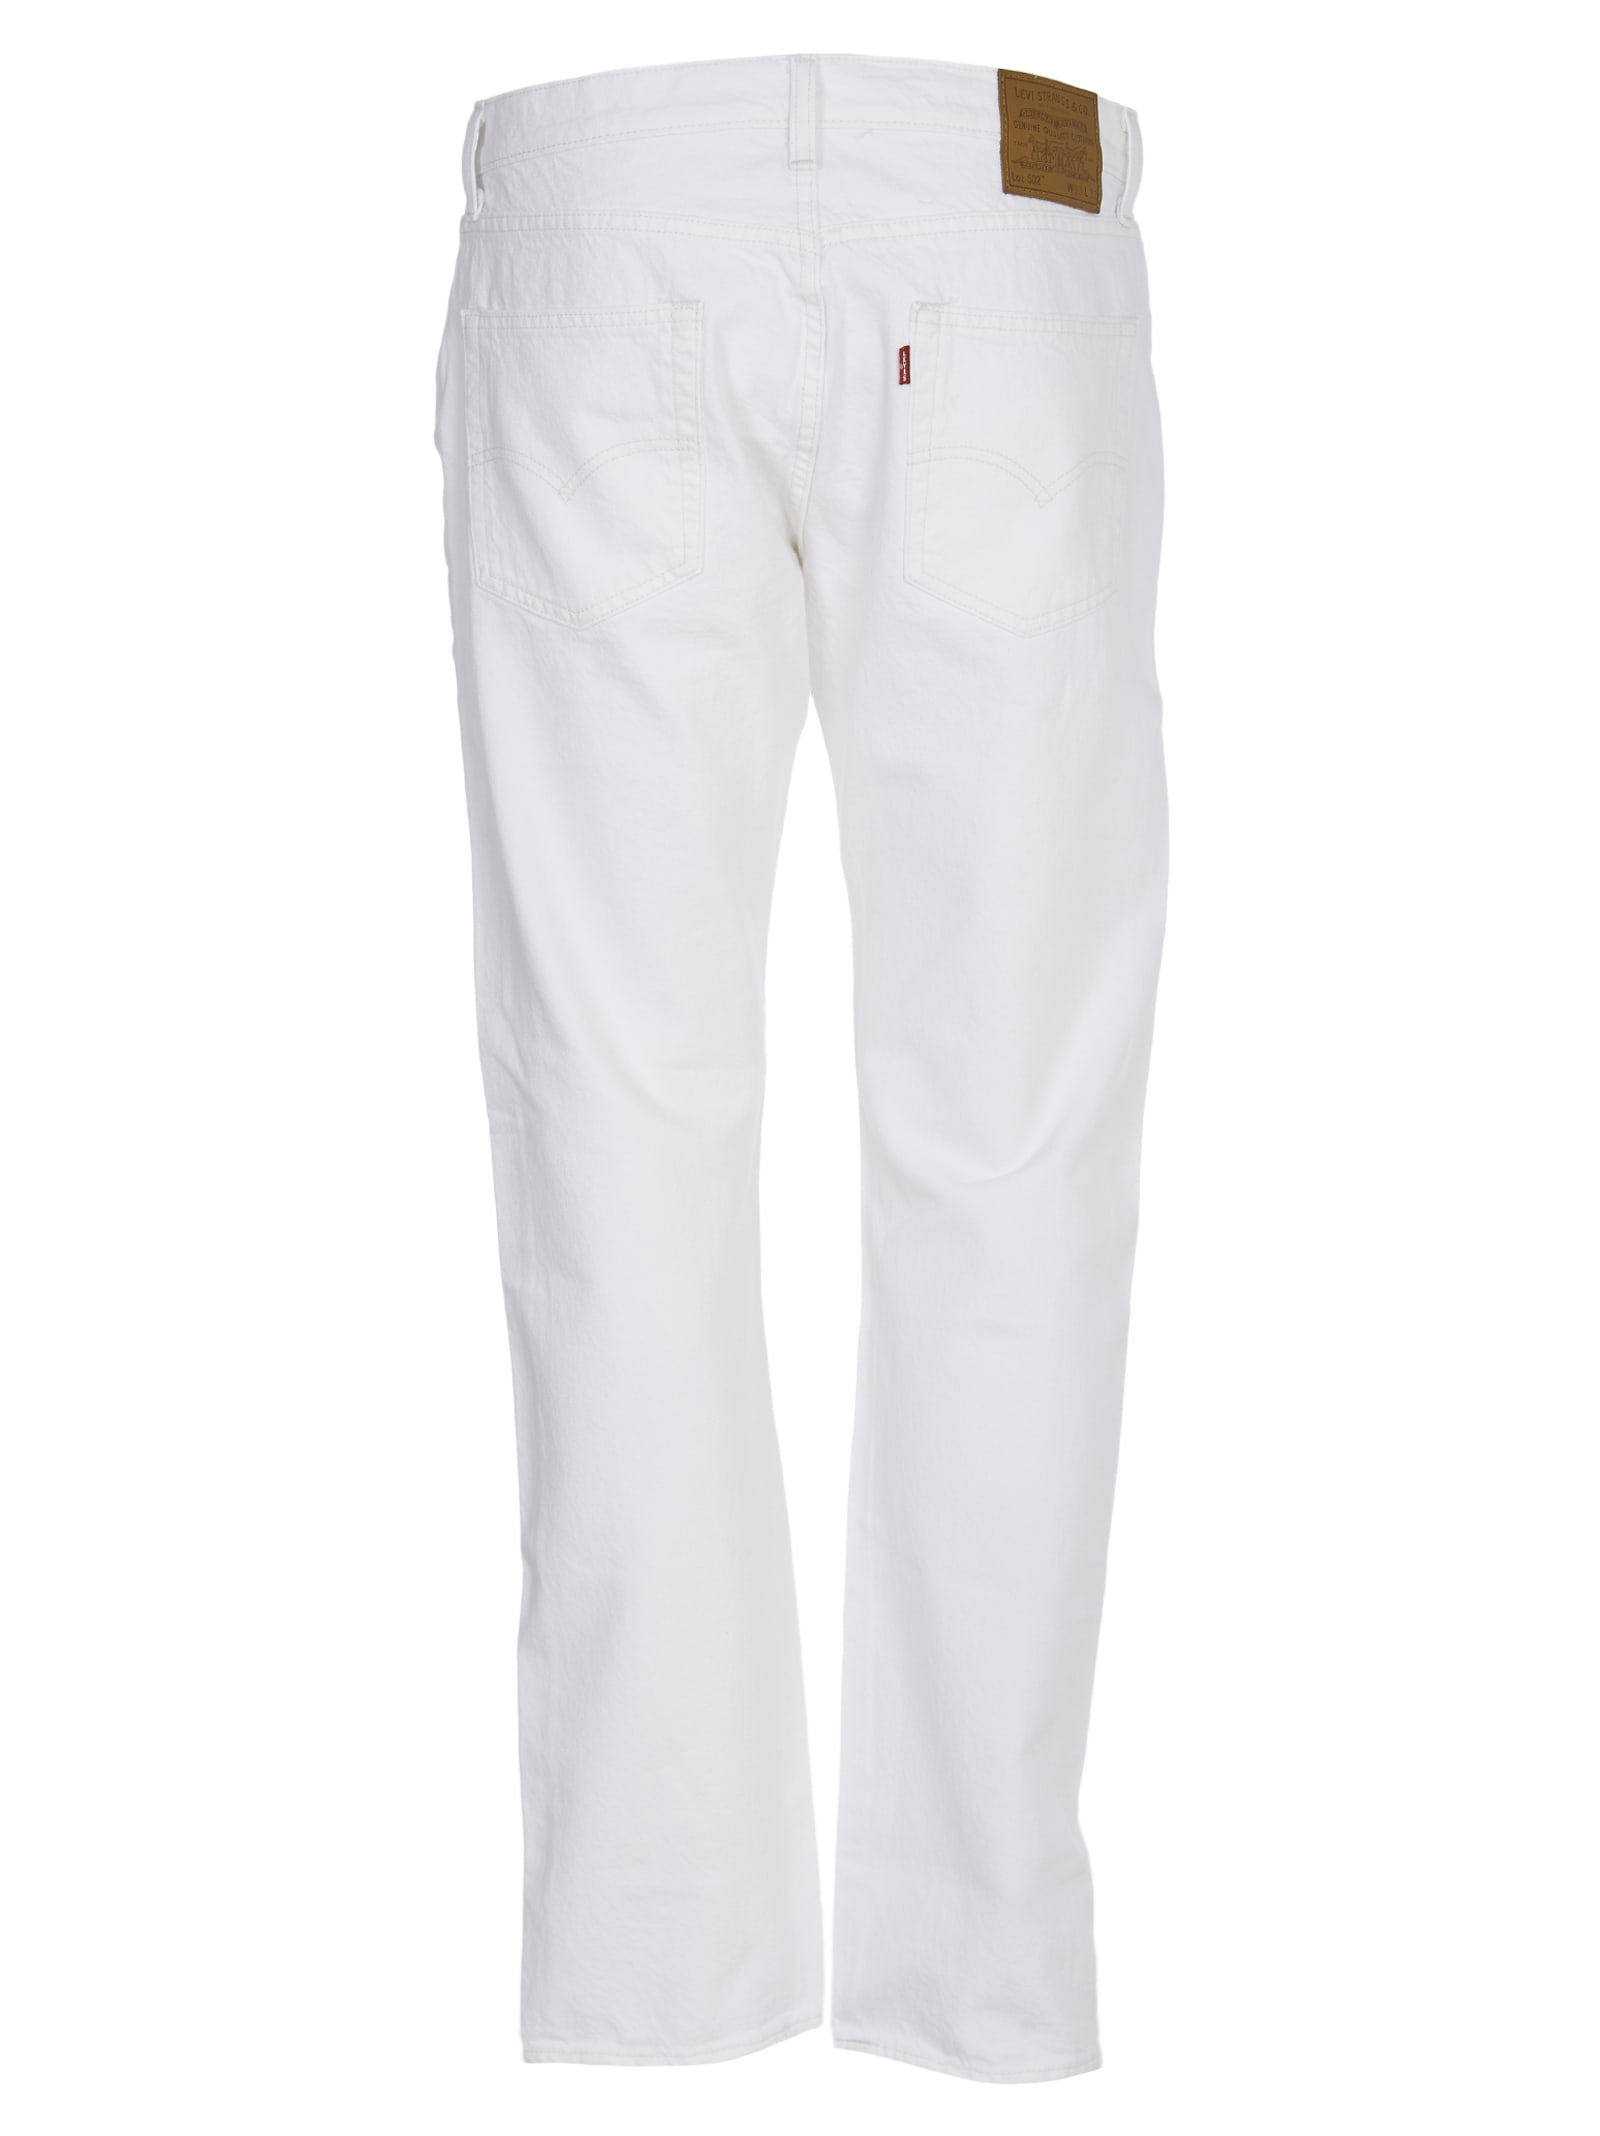 Best Authentic Levi's White 502 Jeans - Top Quality